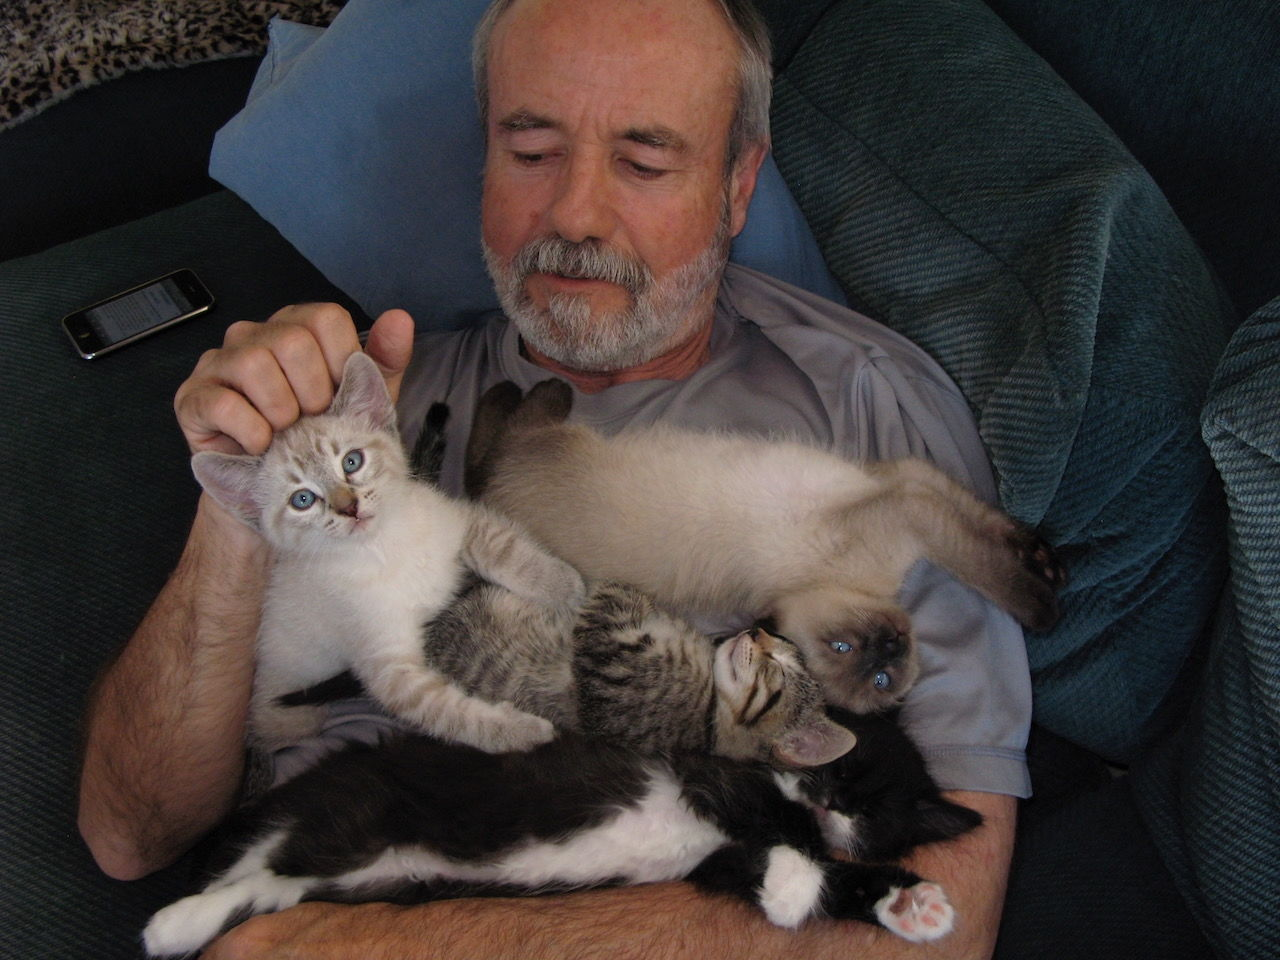 kittens laying on owner